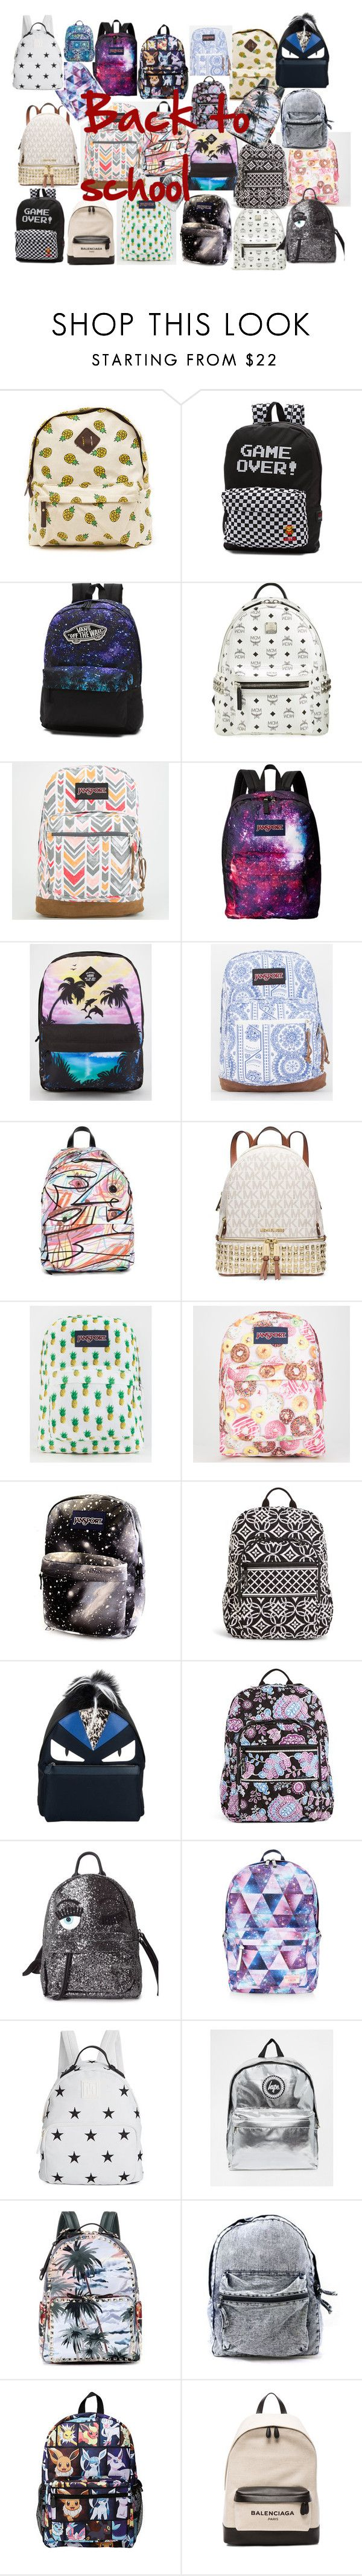 """Sac à dos"" by emma919256 ❤ liked on Polyvore featuring Vans, MCM, JanSport, Jeremy Scott, Michael Kors, Vera Bradley, Fendi, Chiara Ferragni, Accessorize and Tommy Hilfiger"